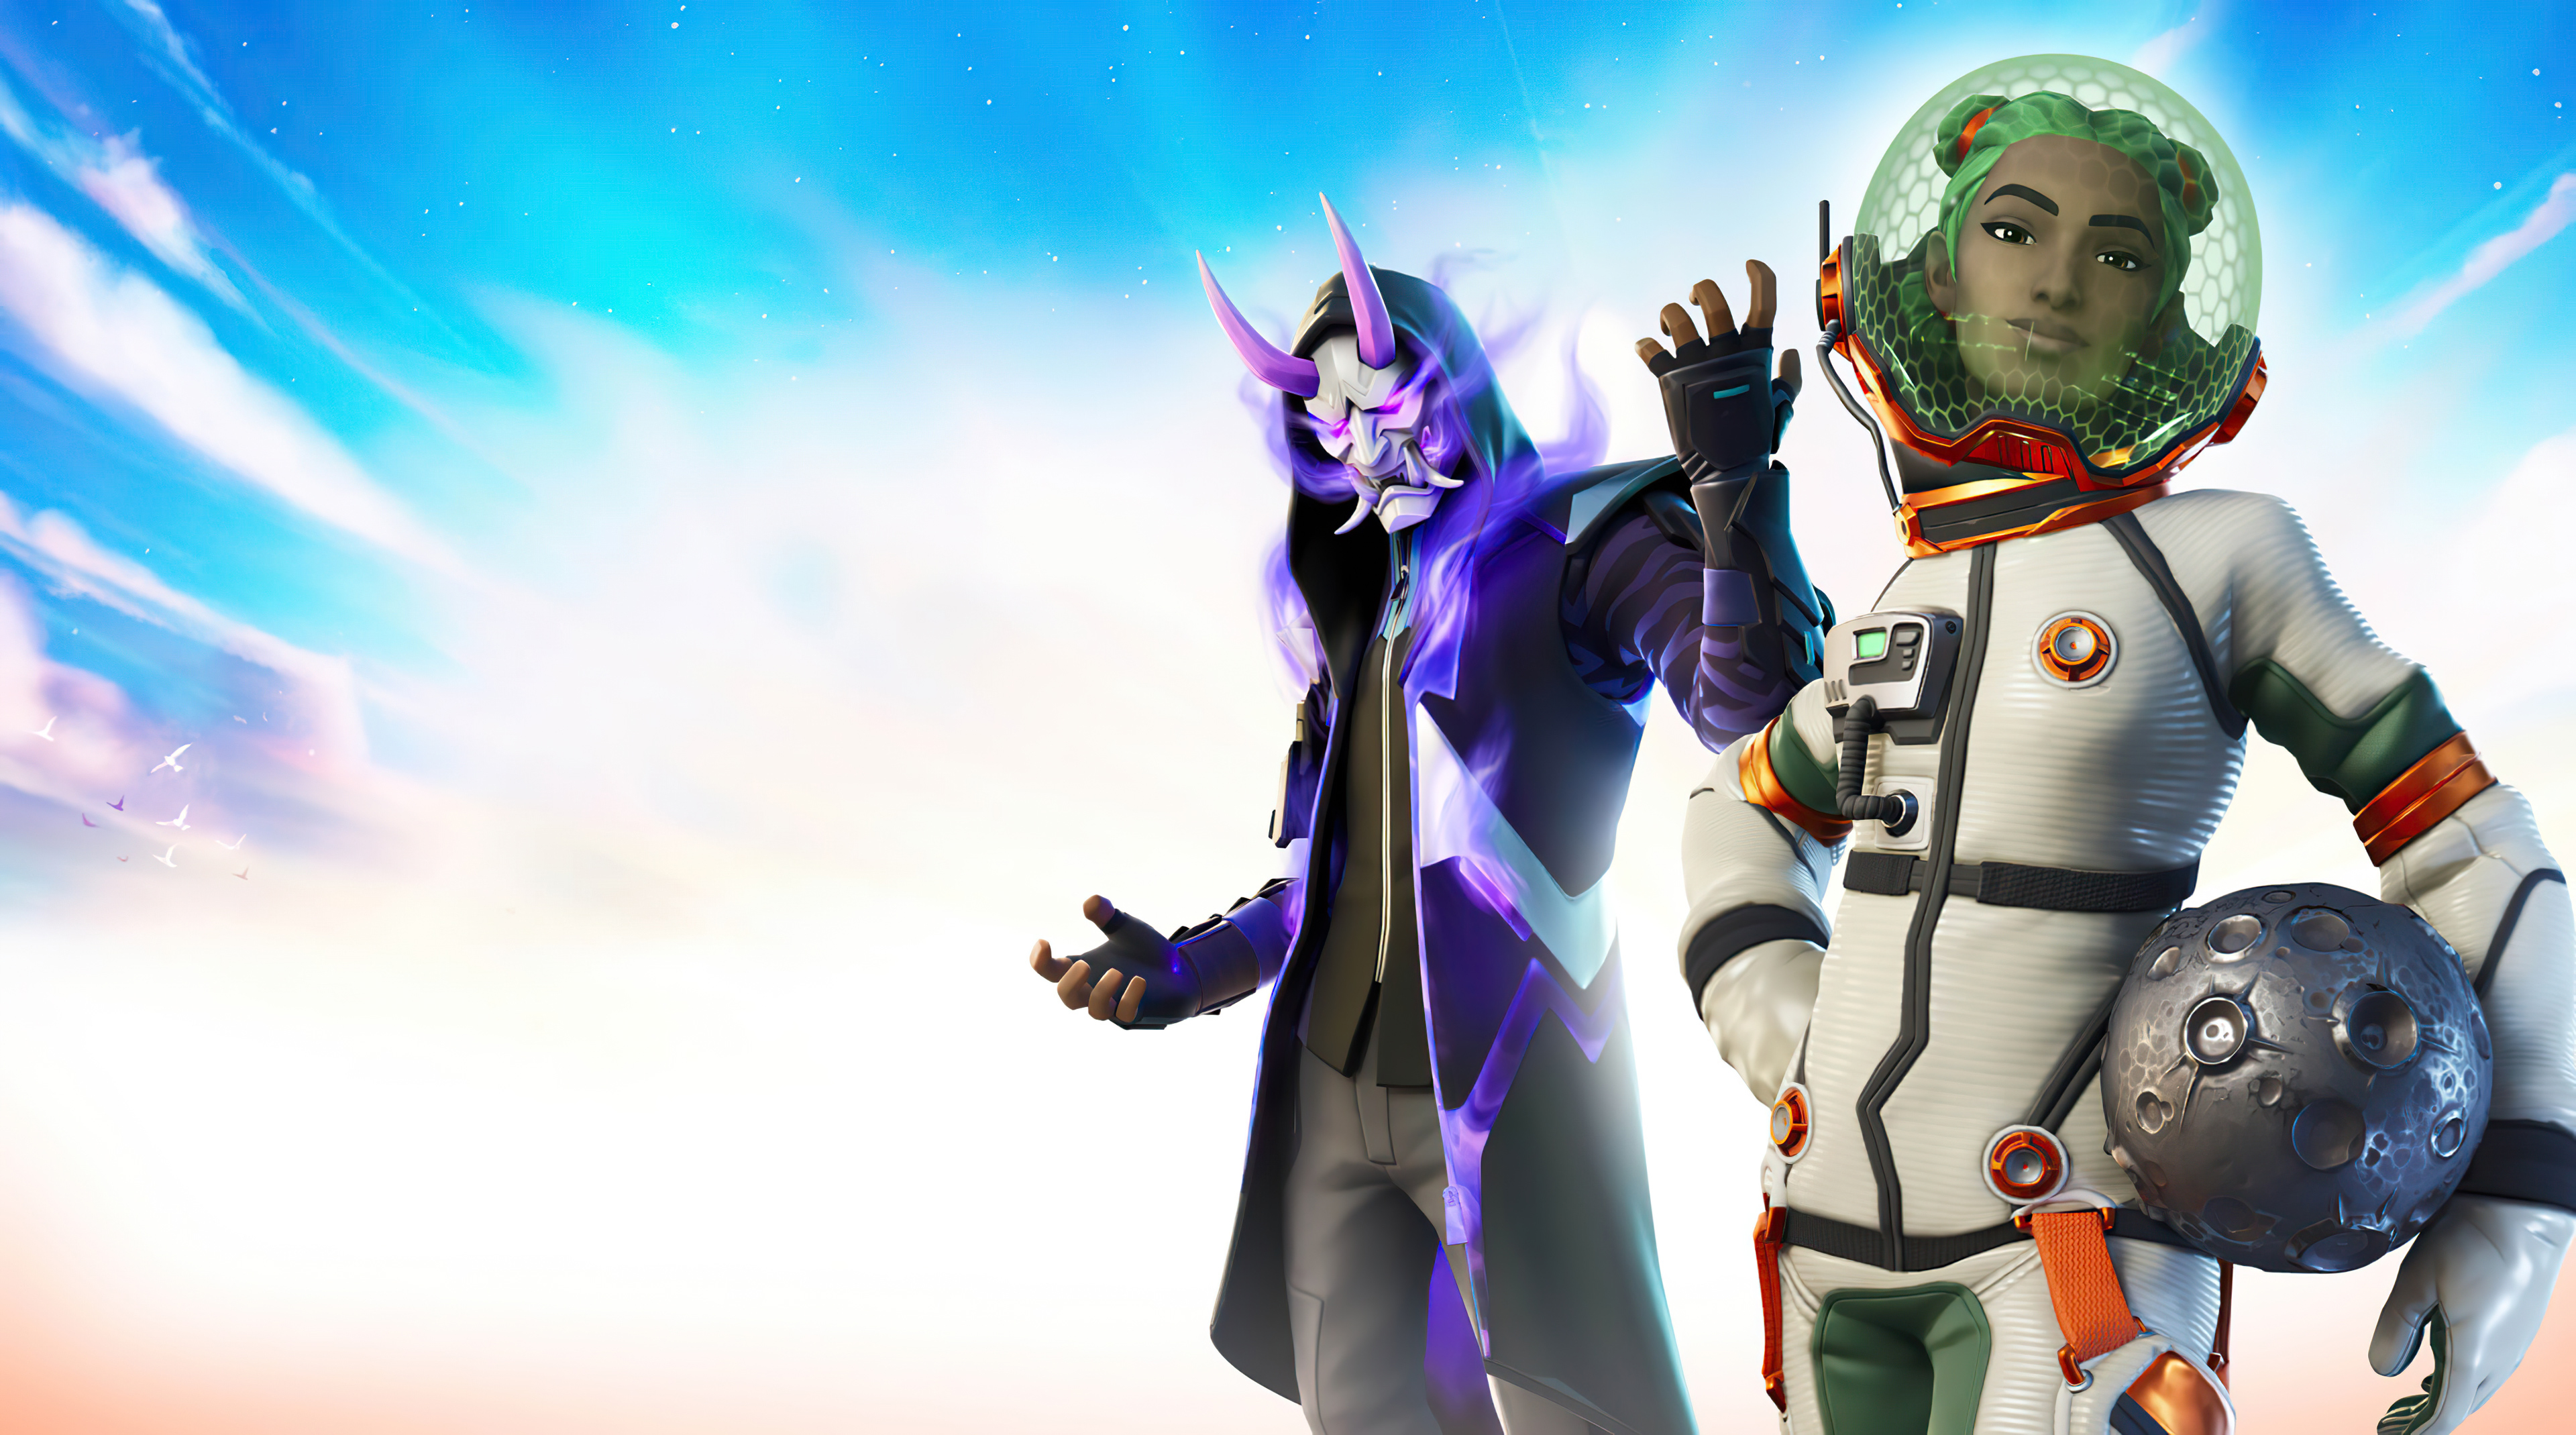 New Fortnite Season 3 2020 Wallpaper Hd Games 4k Wallpapers Images Photos And Background